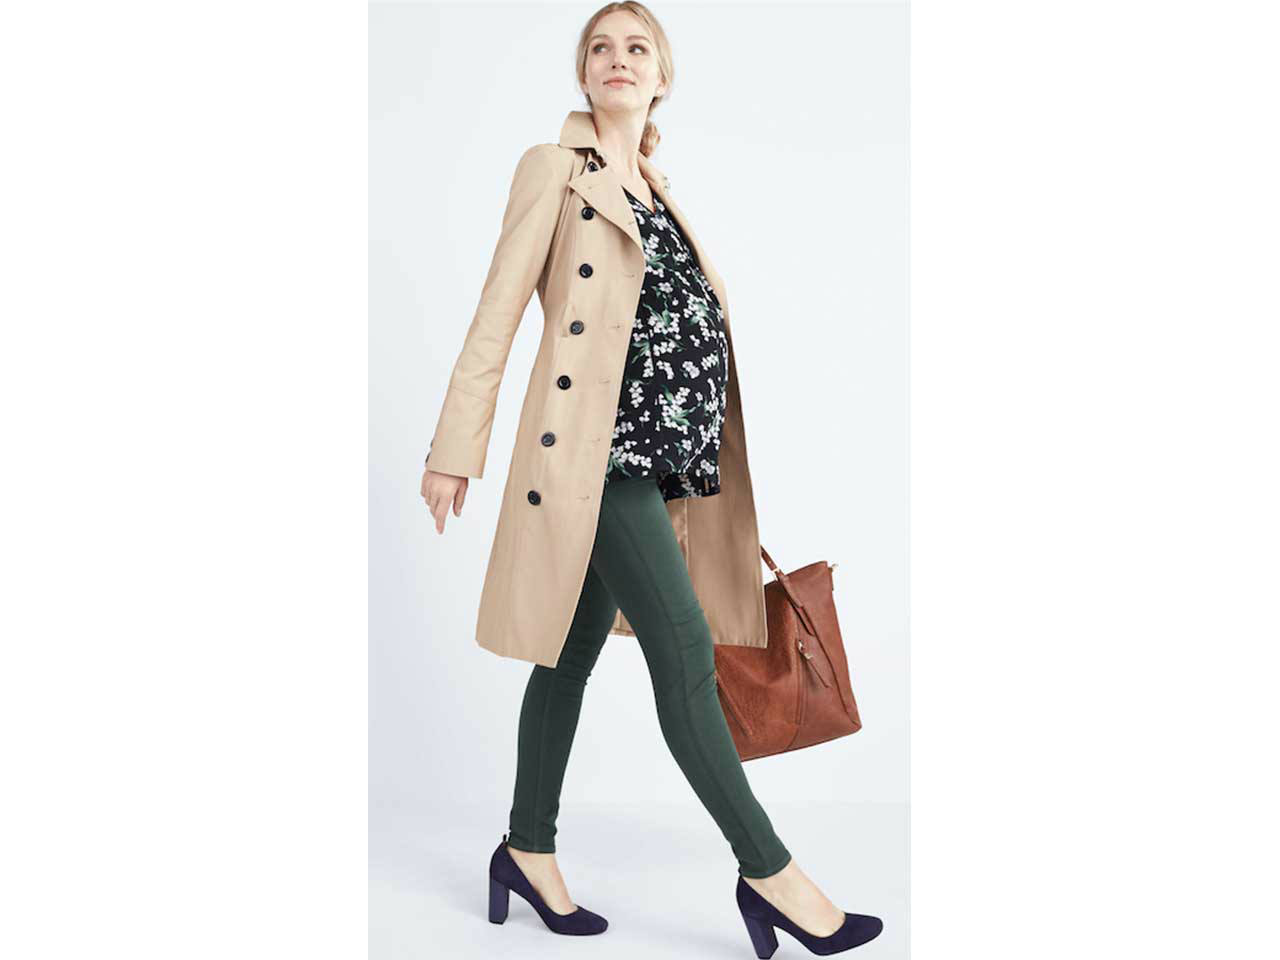 A woman wearing maternity printed top, green maternity jeans and a beige coat